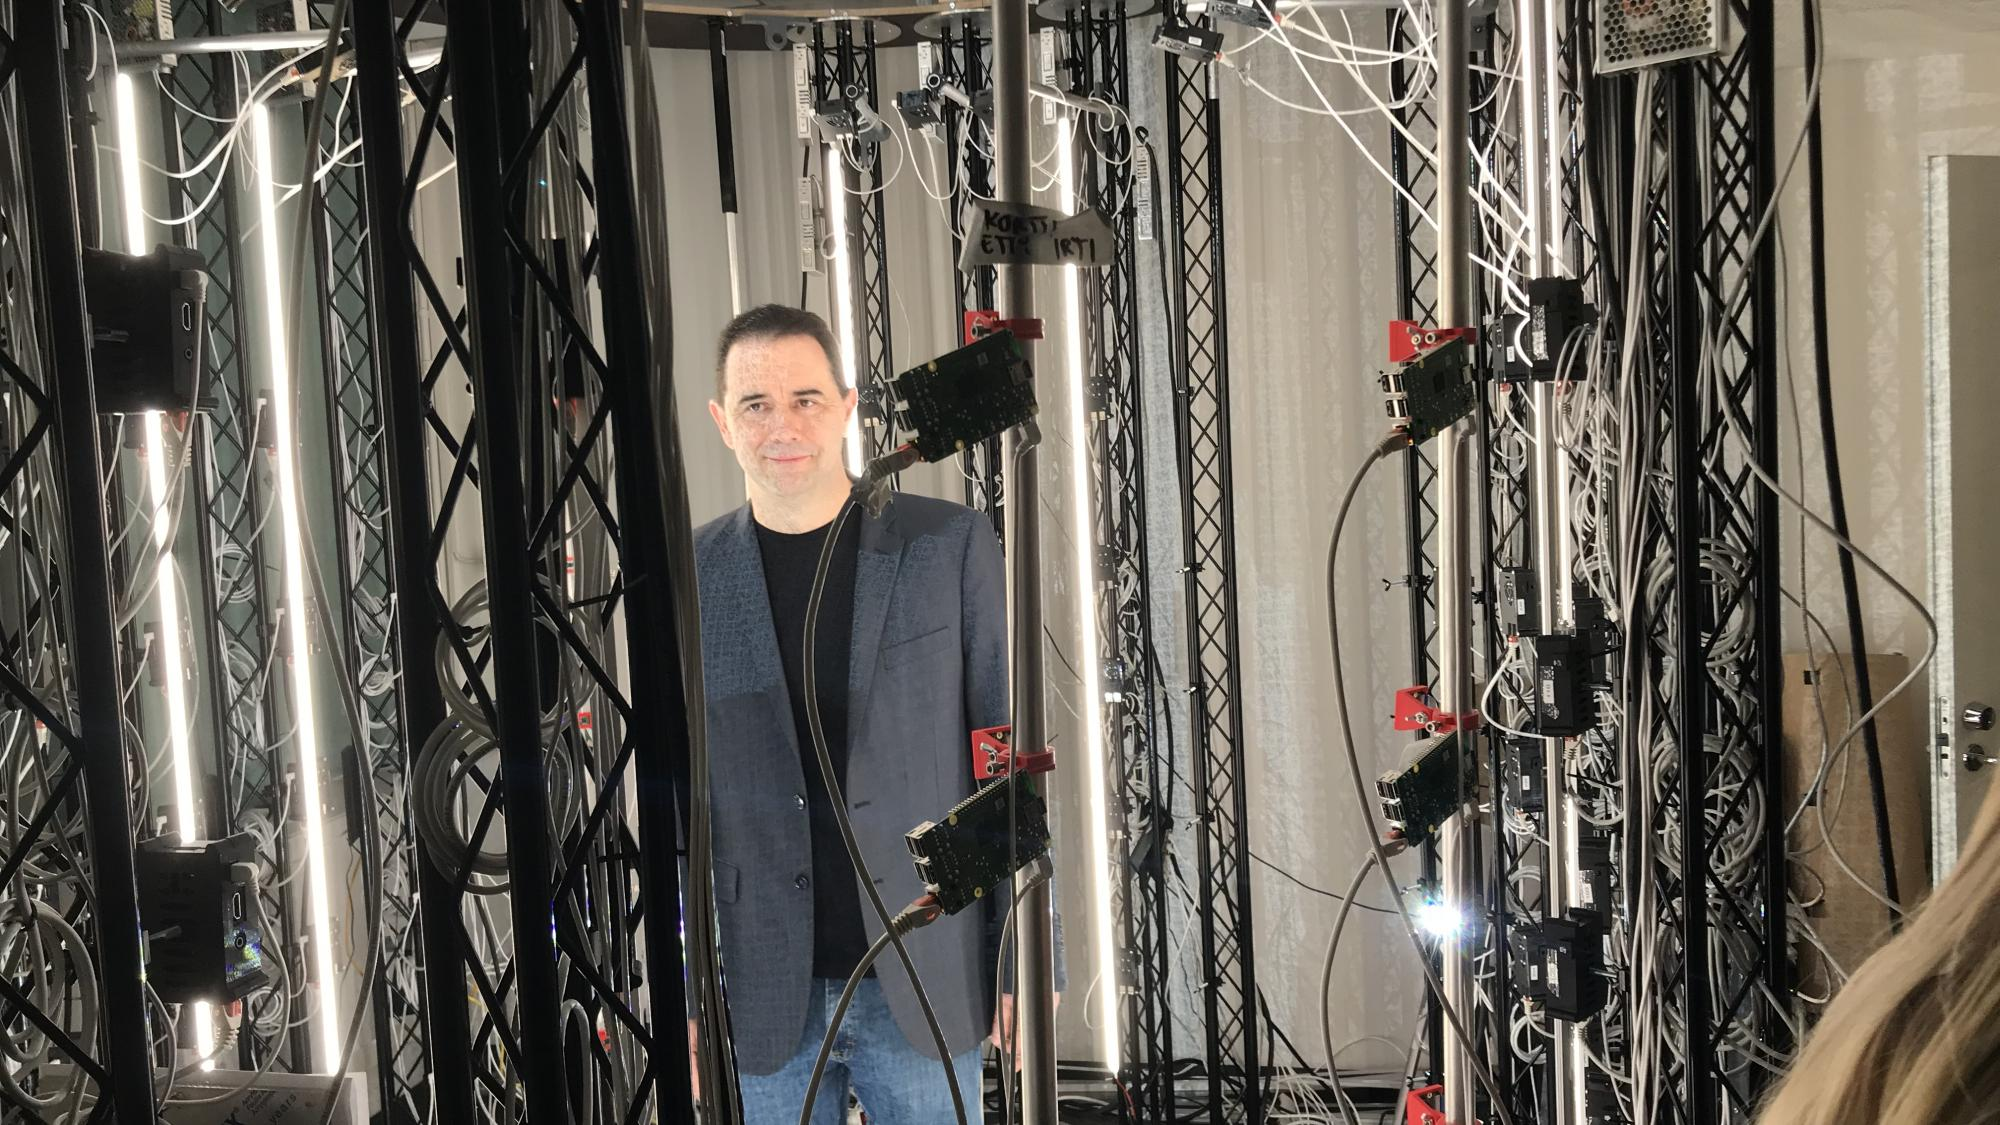 Steven LaValle received significant ERC funding to build the foundations of perception engineering